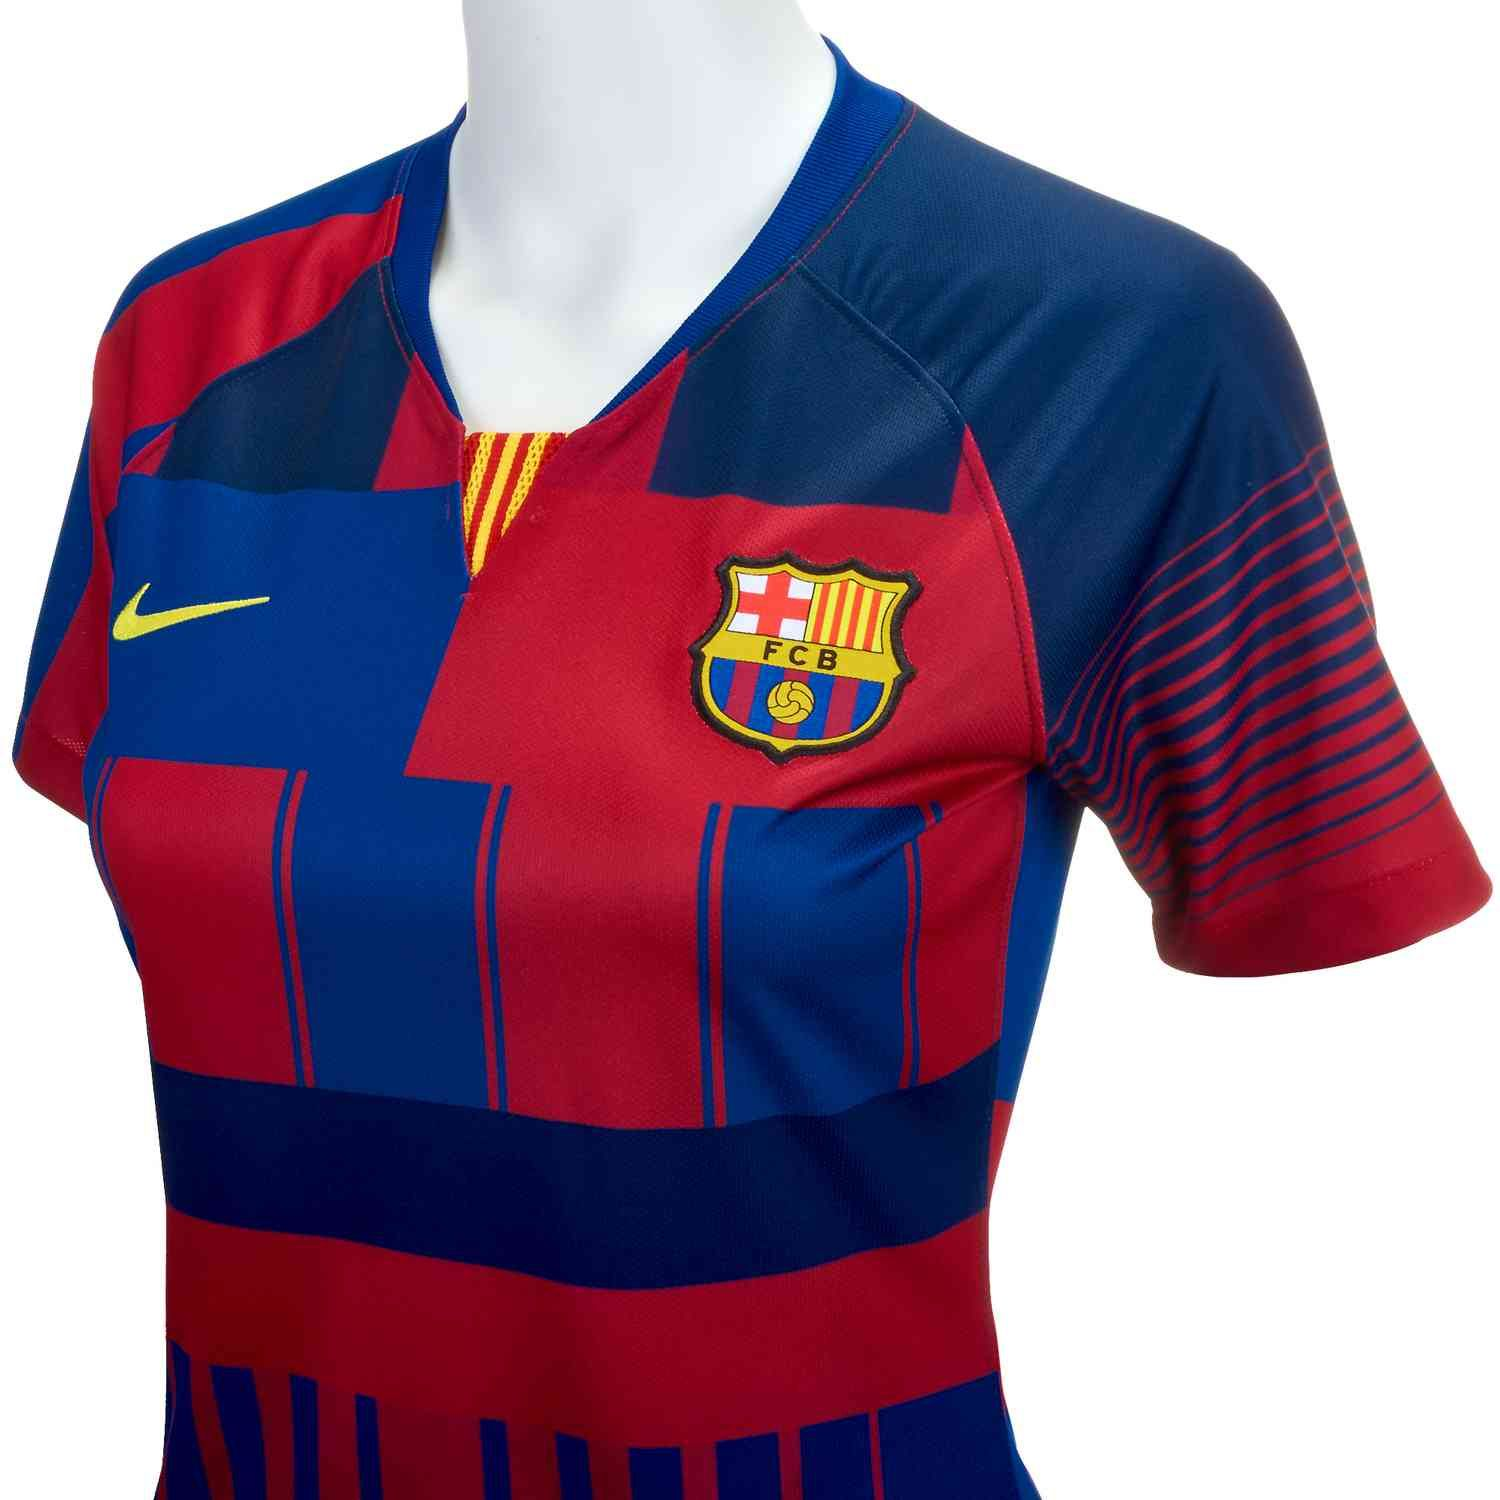 0a4fda752a3 Buy the 2018/19 Nike x Barcelona Womens Anniversary Home Jersey from  www.soccerpro.com